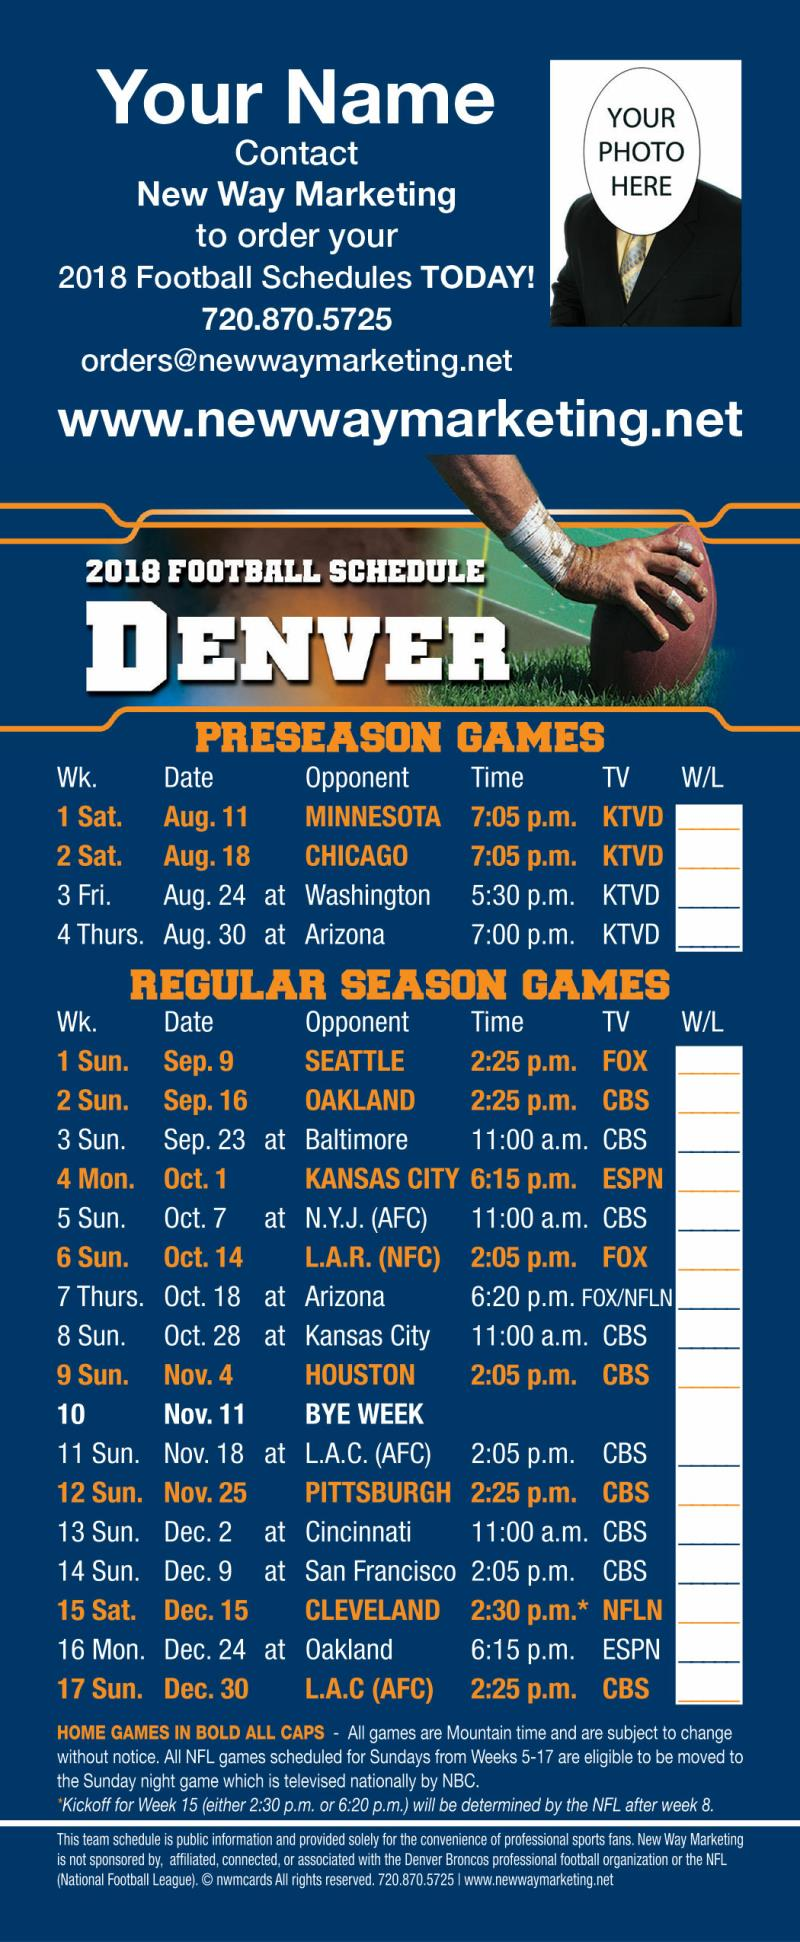 Blue green orange 2018 broncos professional football schedule self mailer schedules have